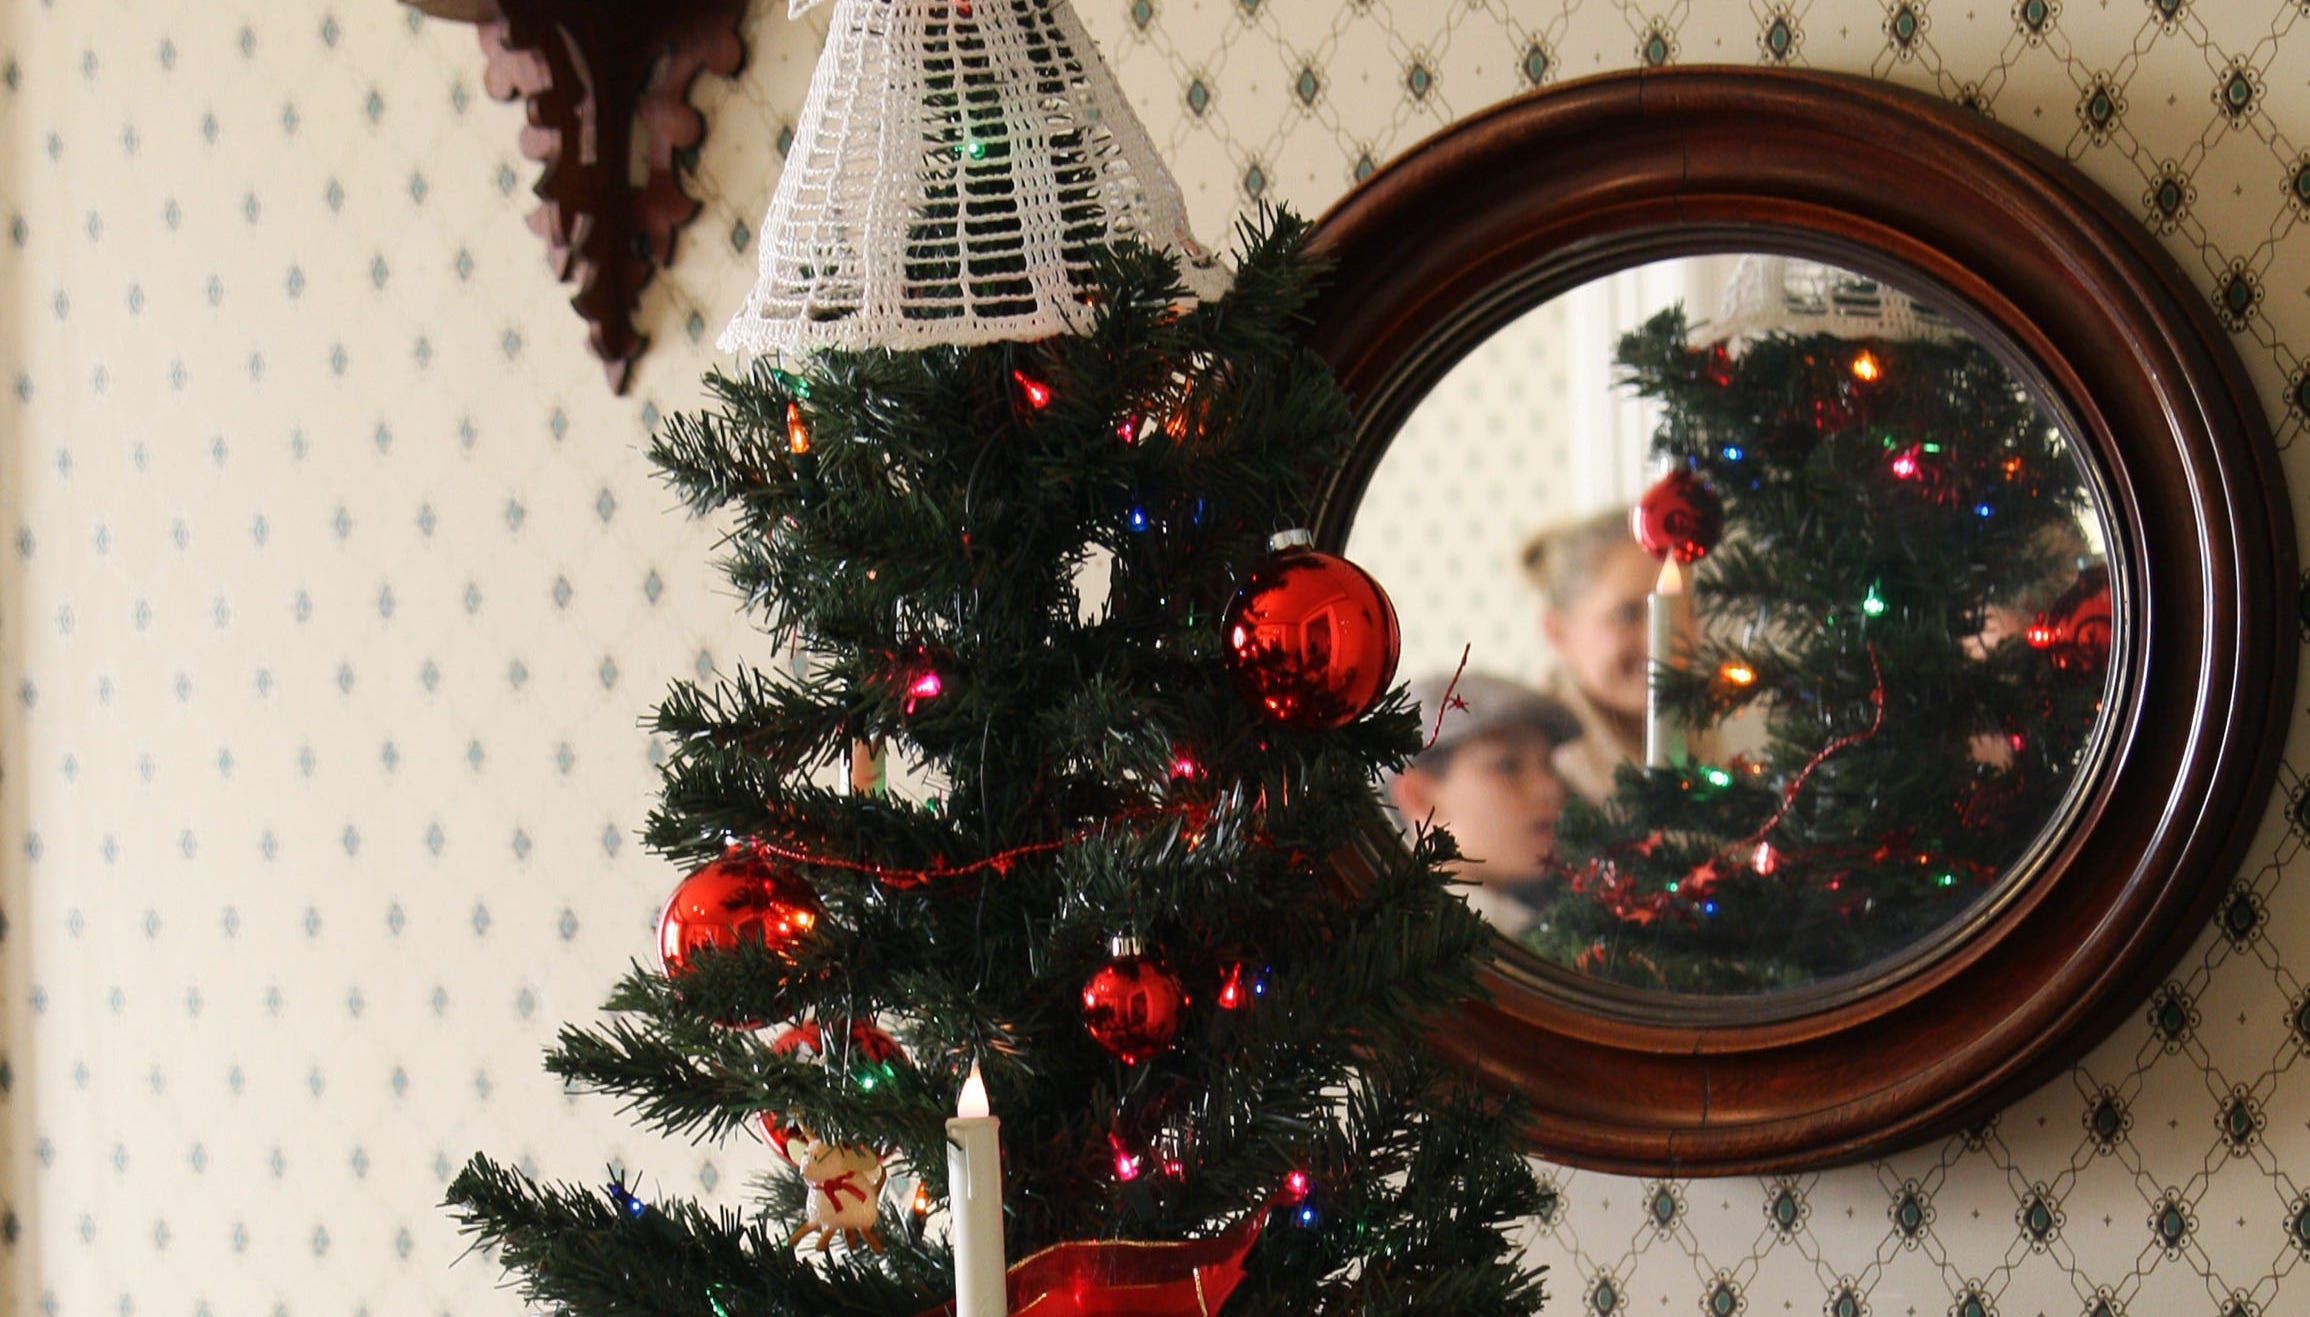 Hildur and Marcelo Avalos, captured in the mirror, gaze at the Christmas tree in the historic Harvey home.